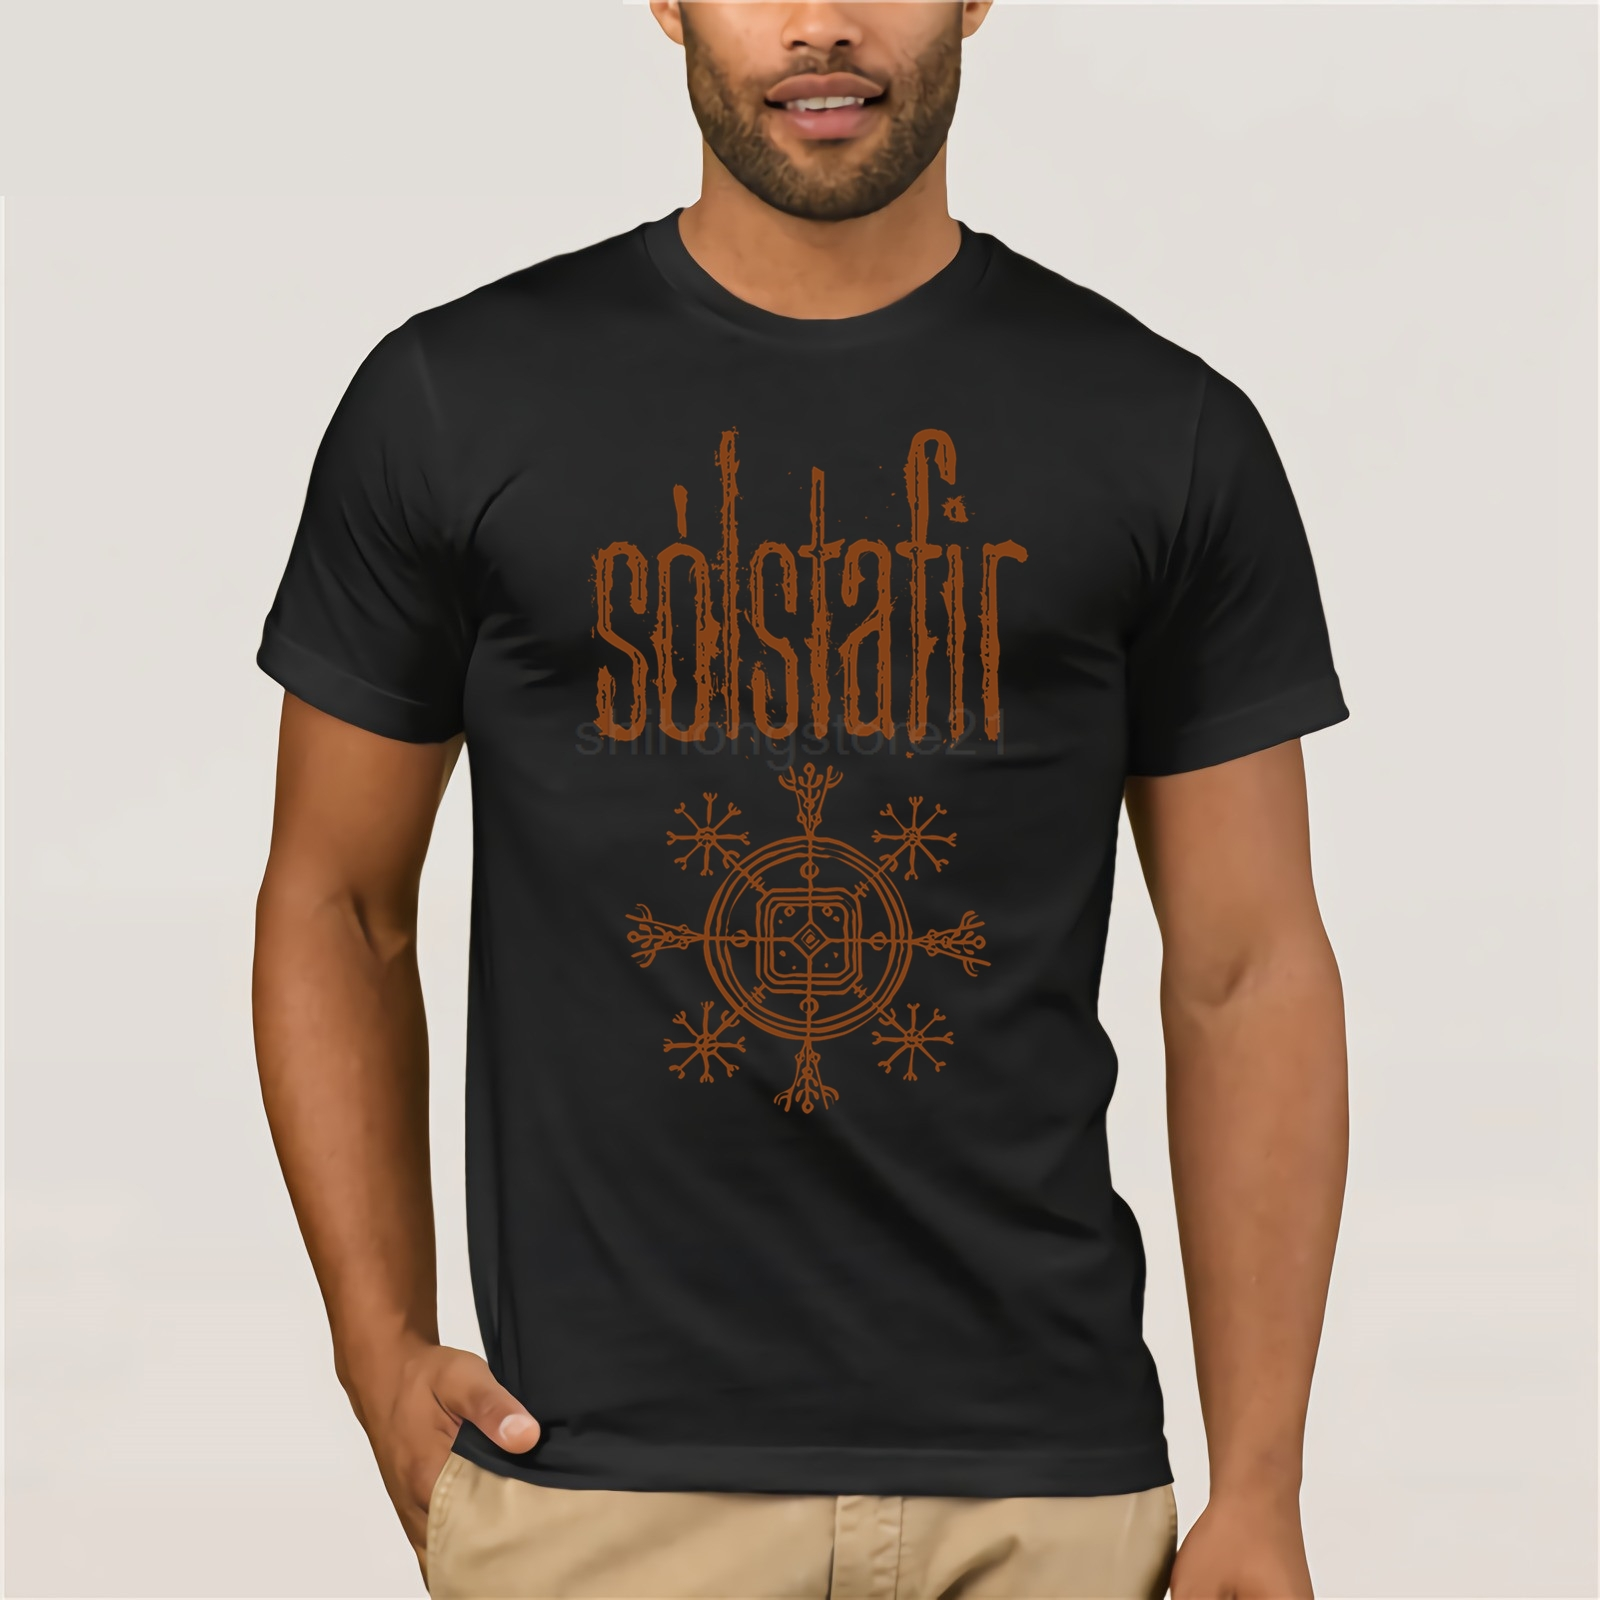 100% Cotton Short Sleeve O - Neck Tops Tee Shirts S Lstafir Solstafir T-Shirt New!